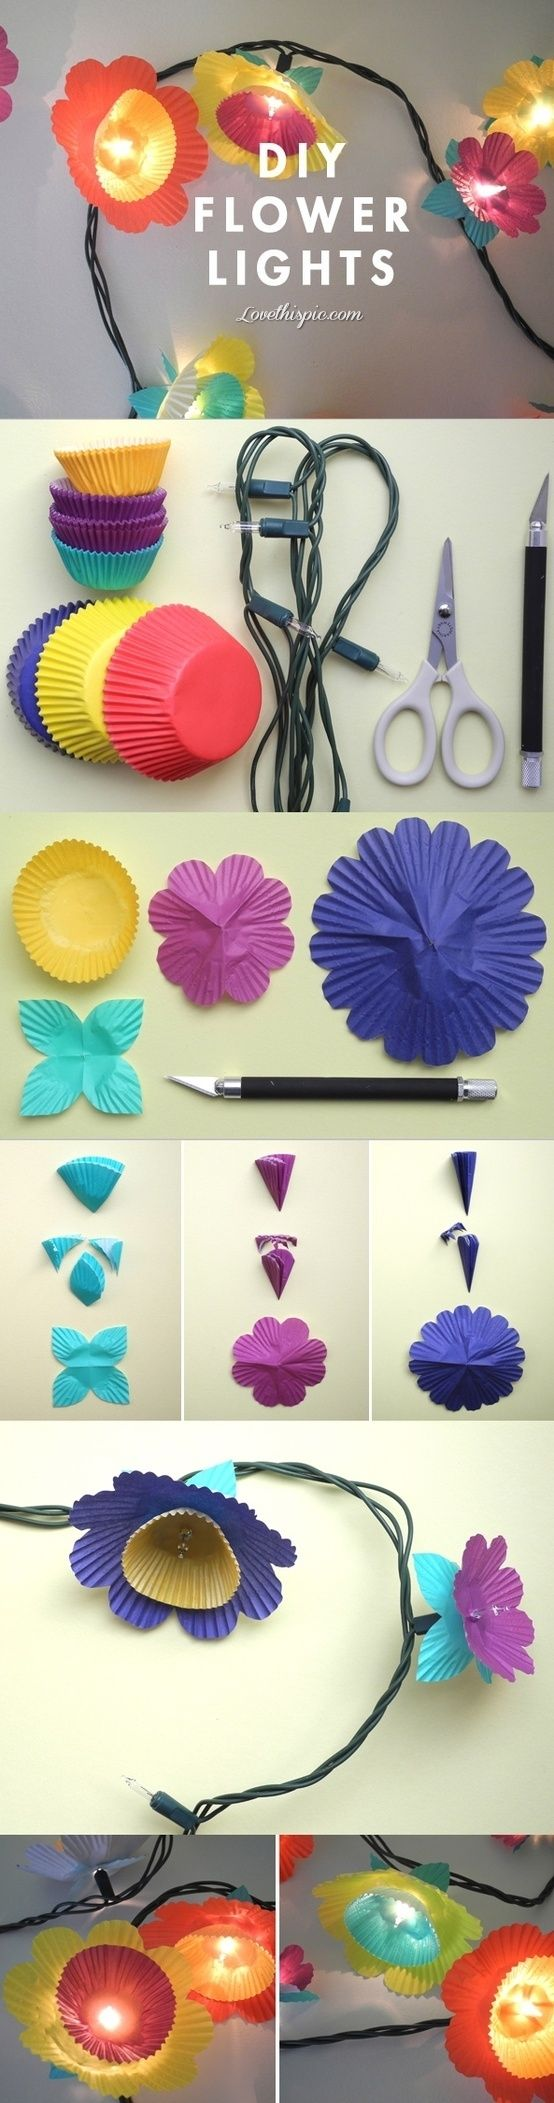 DIY Flower Light Pictures, Photos, and Images for Facebook, Tumblr, Pinterest, and Twitter